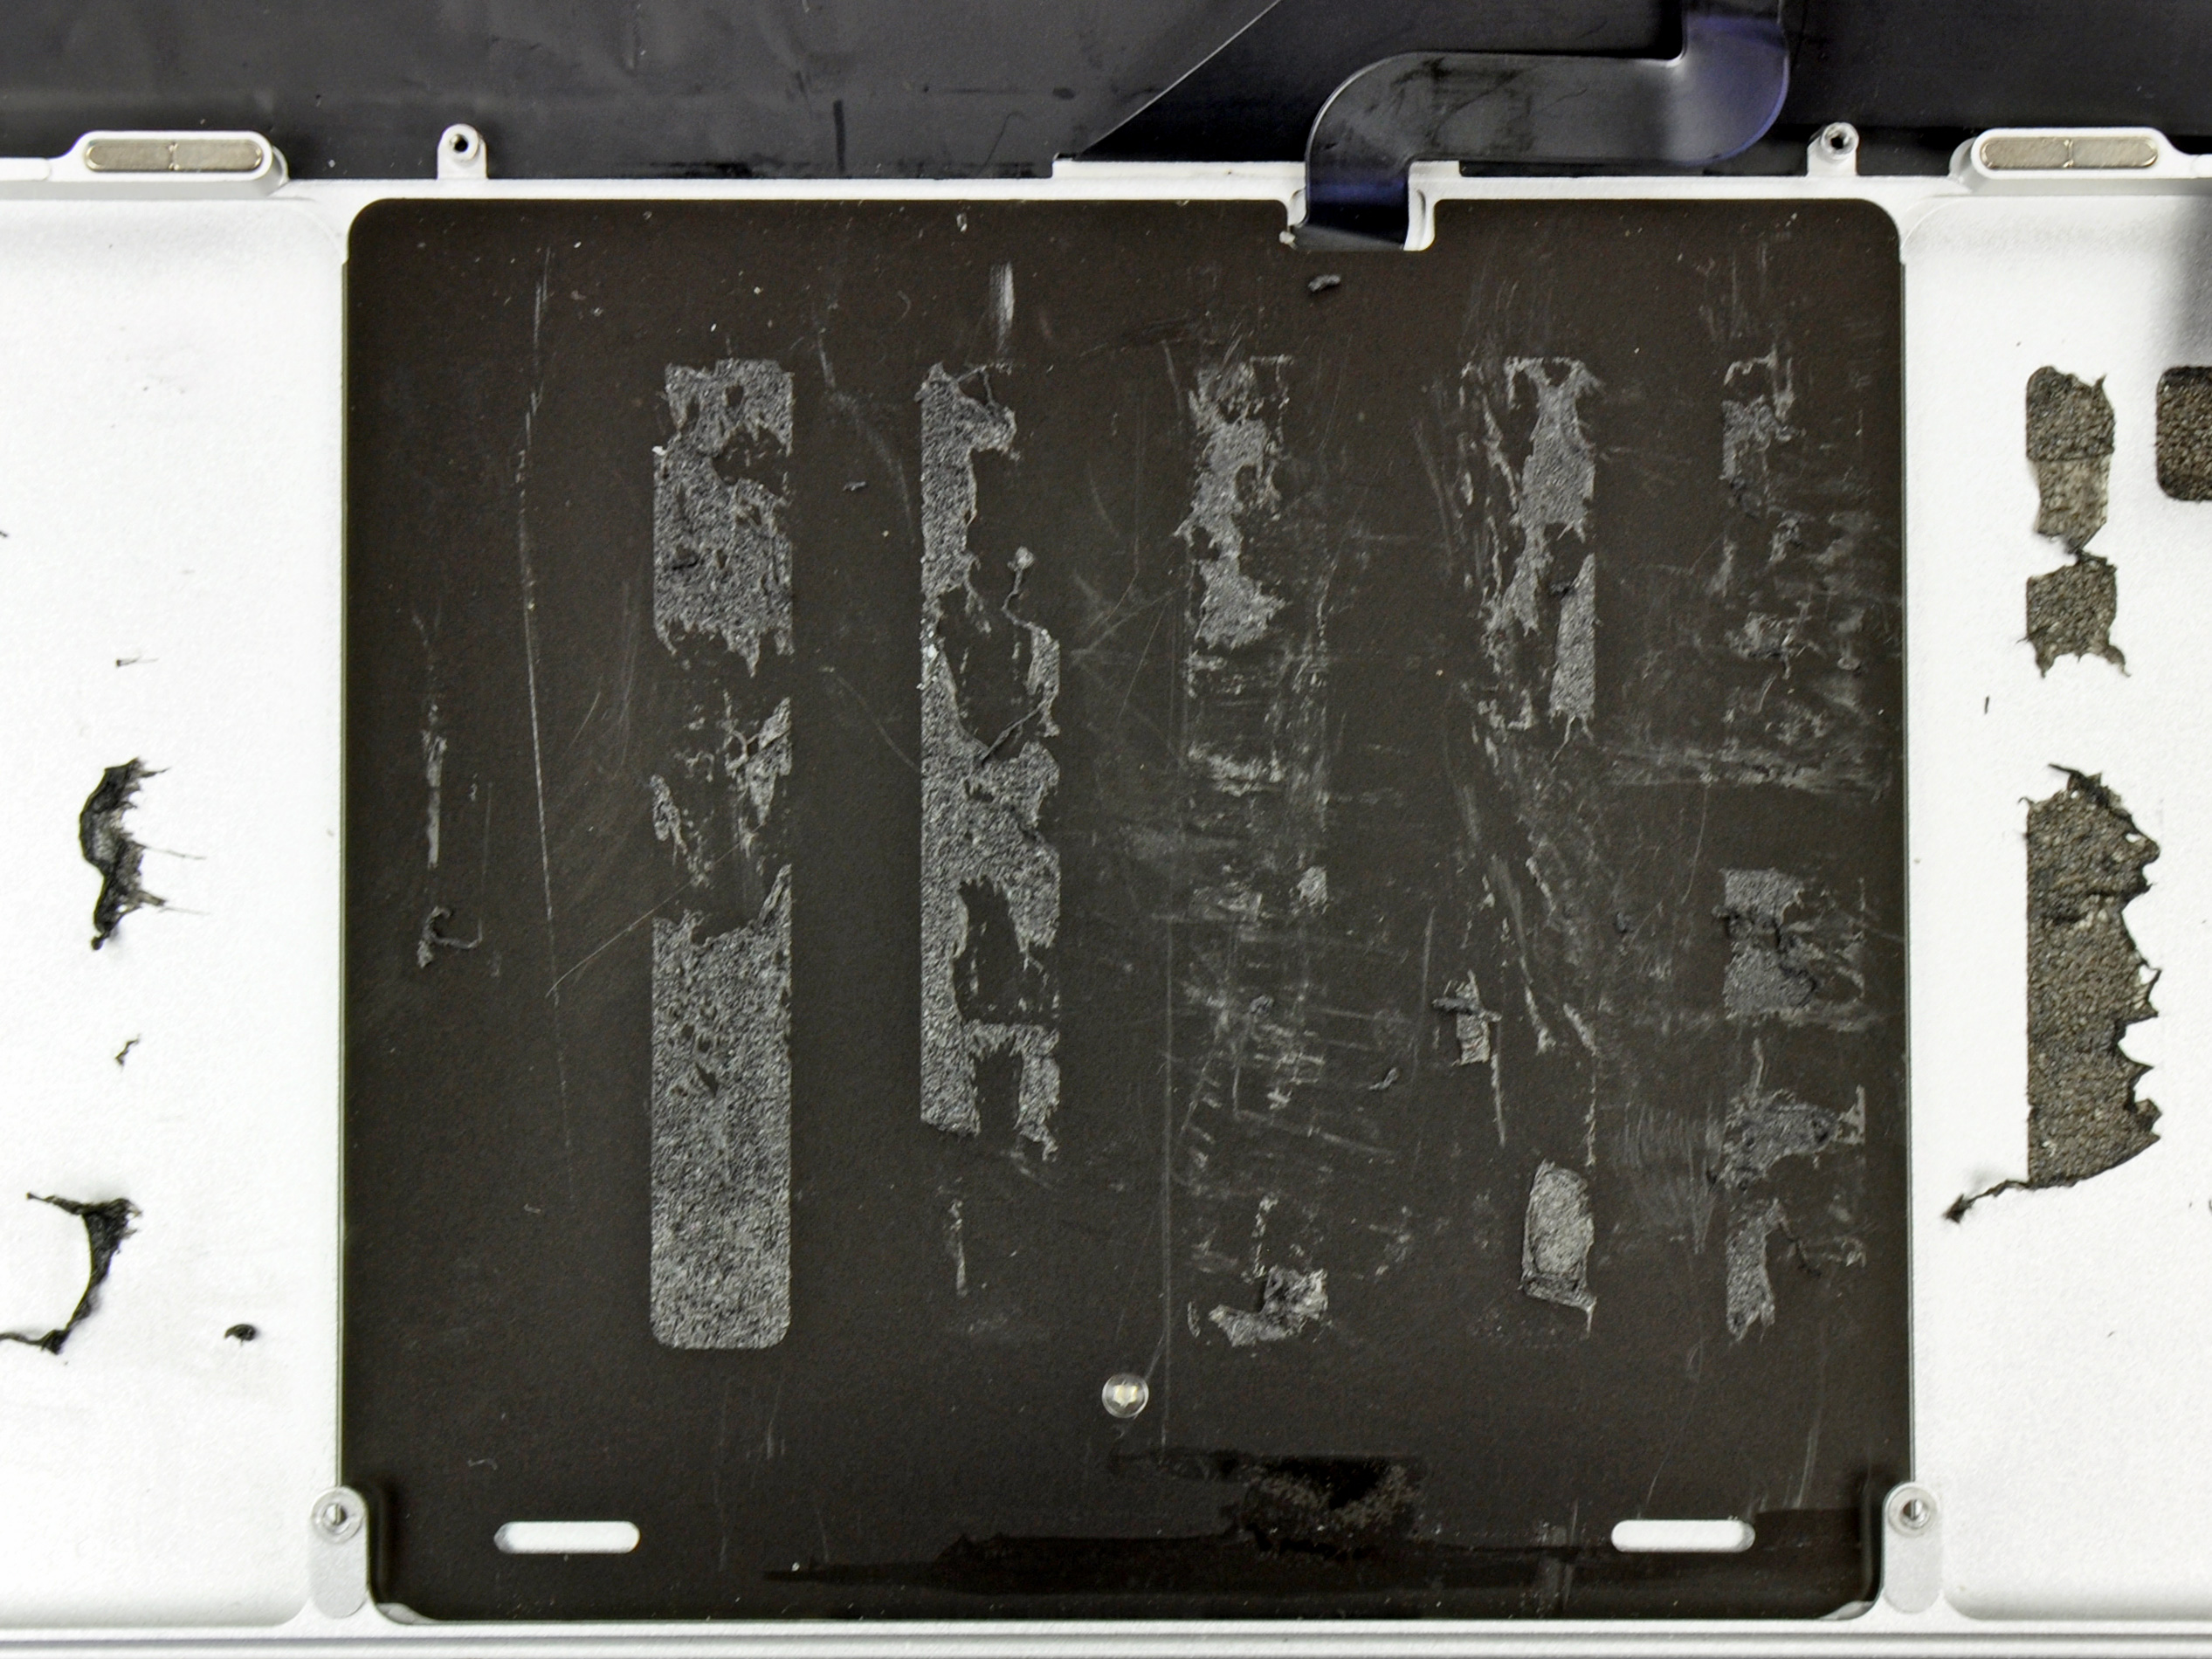 To the left and right of the underside of the trackpad, you can just discern the edges of the sculpted wells that hold four of the Retina MacBook Pro's six Li-Po cells.